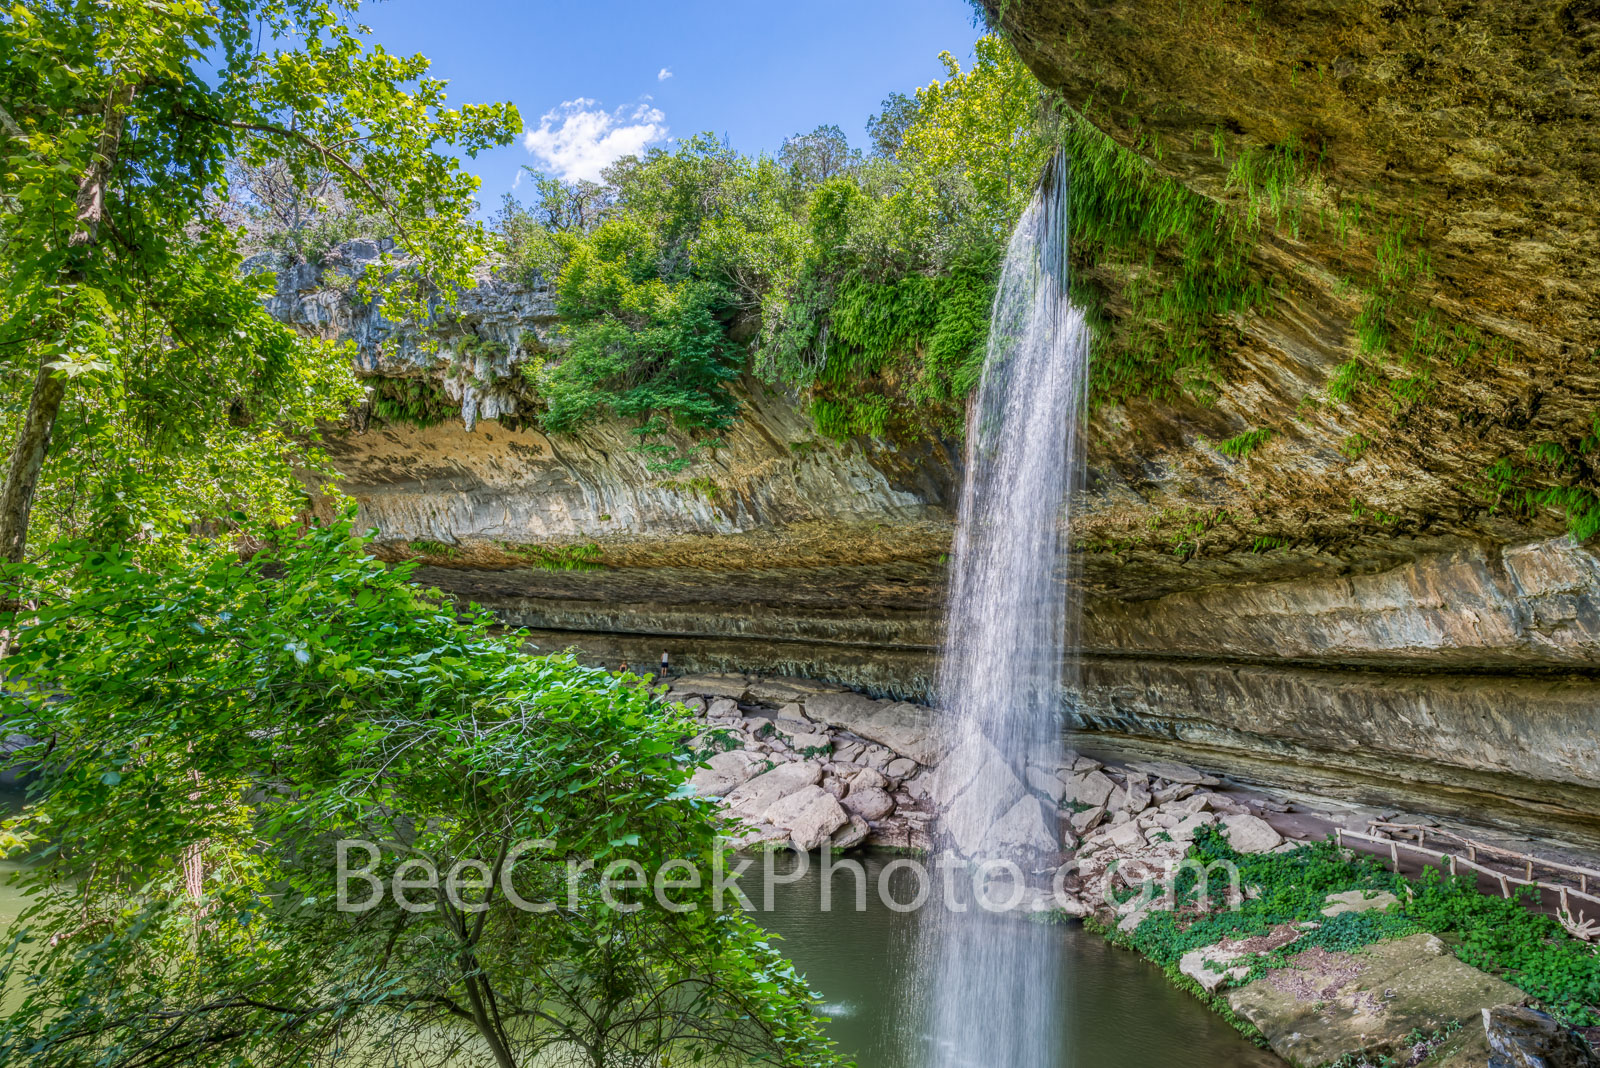 Hill Country Waterfall - Hamilton Pool waterfall a Travis country park in the Texas hill country is one of those gems that was...